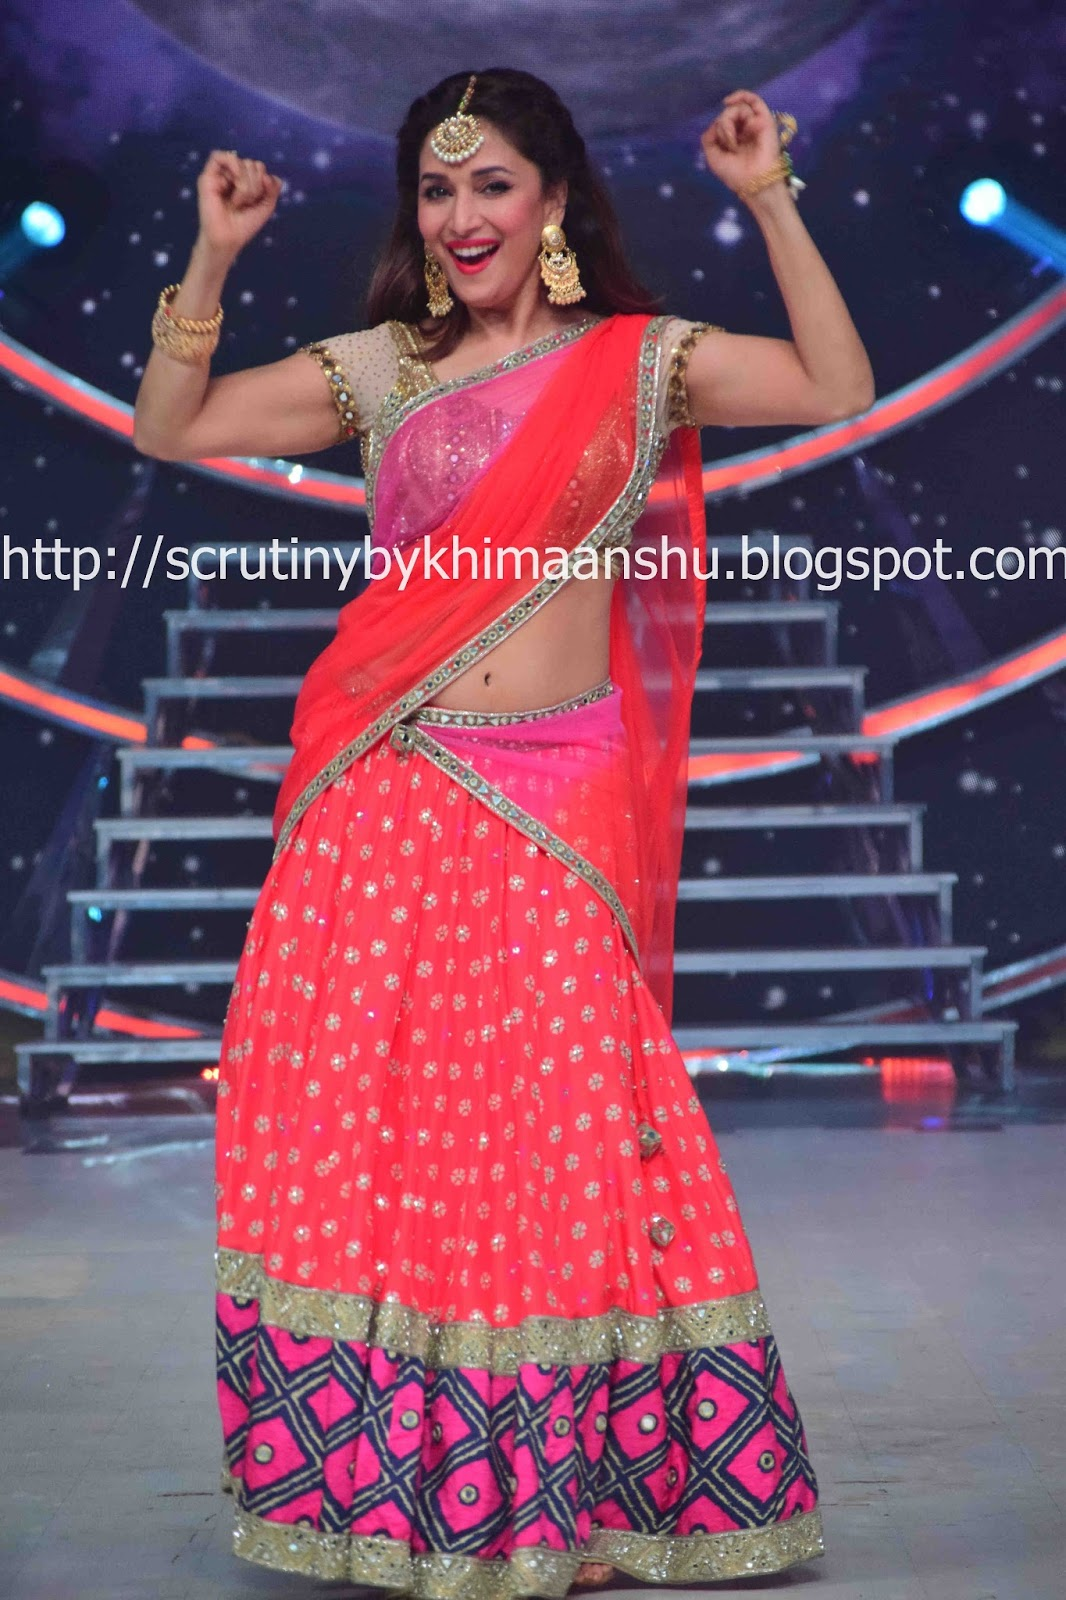 Heroines Dance Photos At Cinemaa Awards 2012: Scrutiny: Madhuri Pays A Dancing Tribute To Bollywood